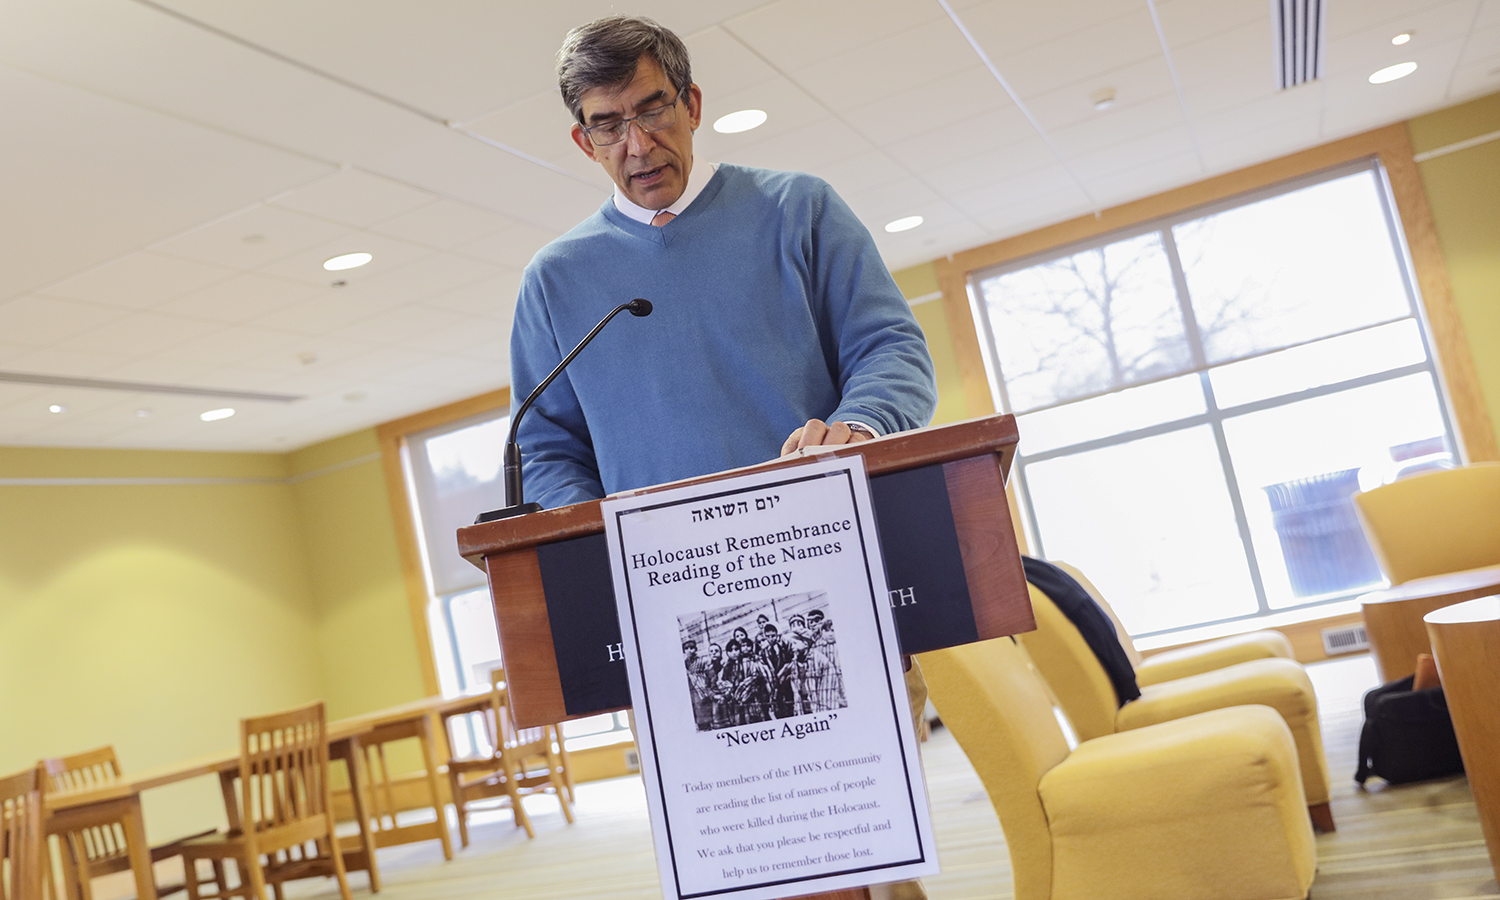 Associate Professor of Religious Studies Richard Salter '86, P'15 reads the names of those lost in the Holocaust as part of Hillel's annual Reading of the names in observance of Yom HaShoah, Holocaust Remembrance Day. Members of the HWS community took turns reading throughout the day.